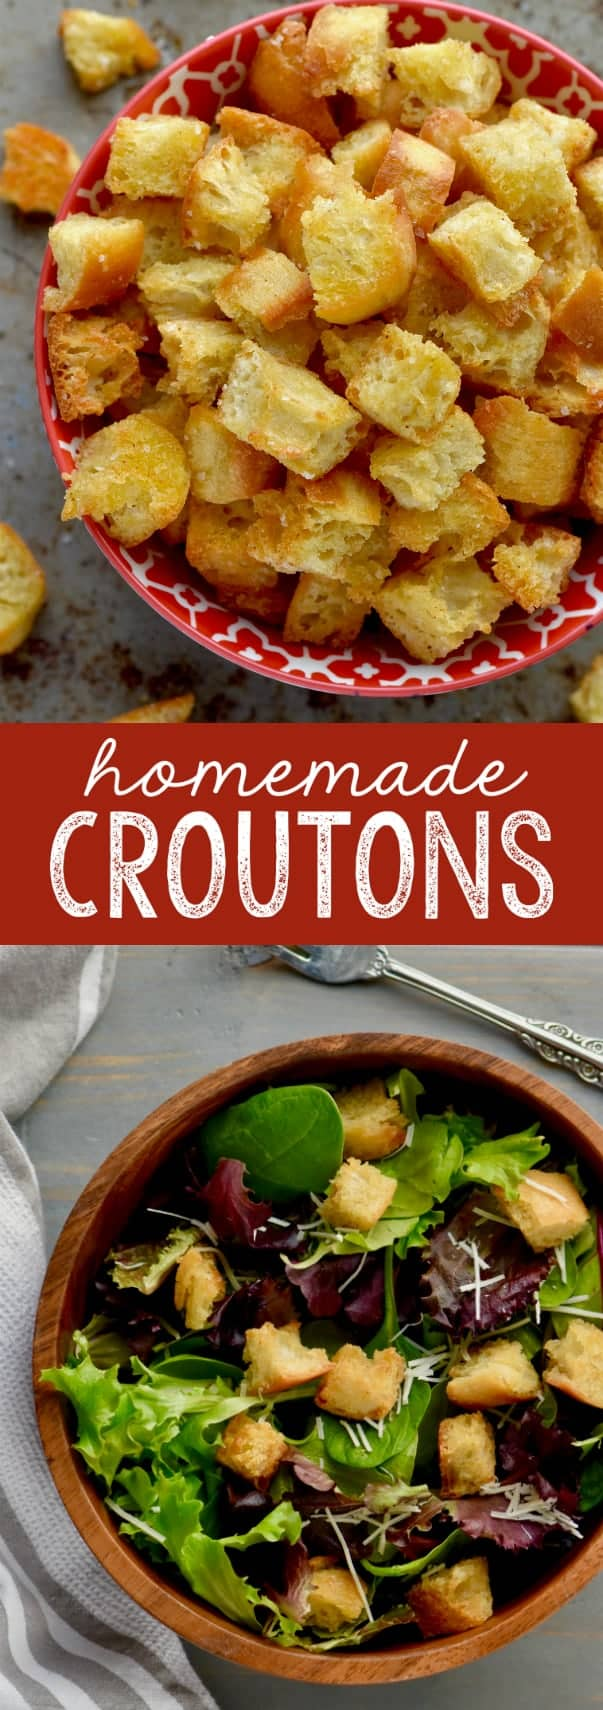 A collage of the Homemade Croutons: the top photo shows the Homemade Croutons in a red bowl, and the bottom photo shows the Homemade Croutons in a simple salad.